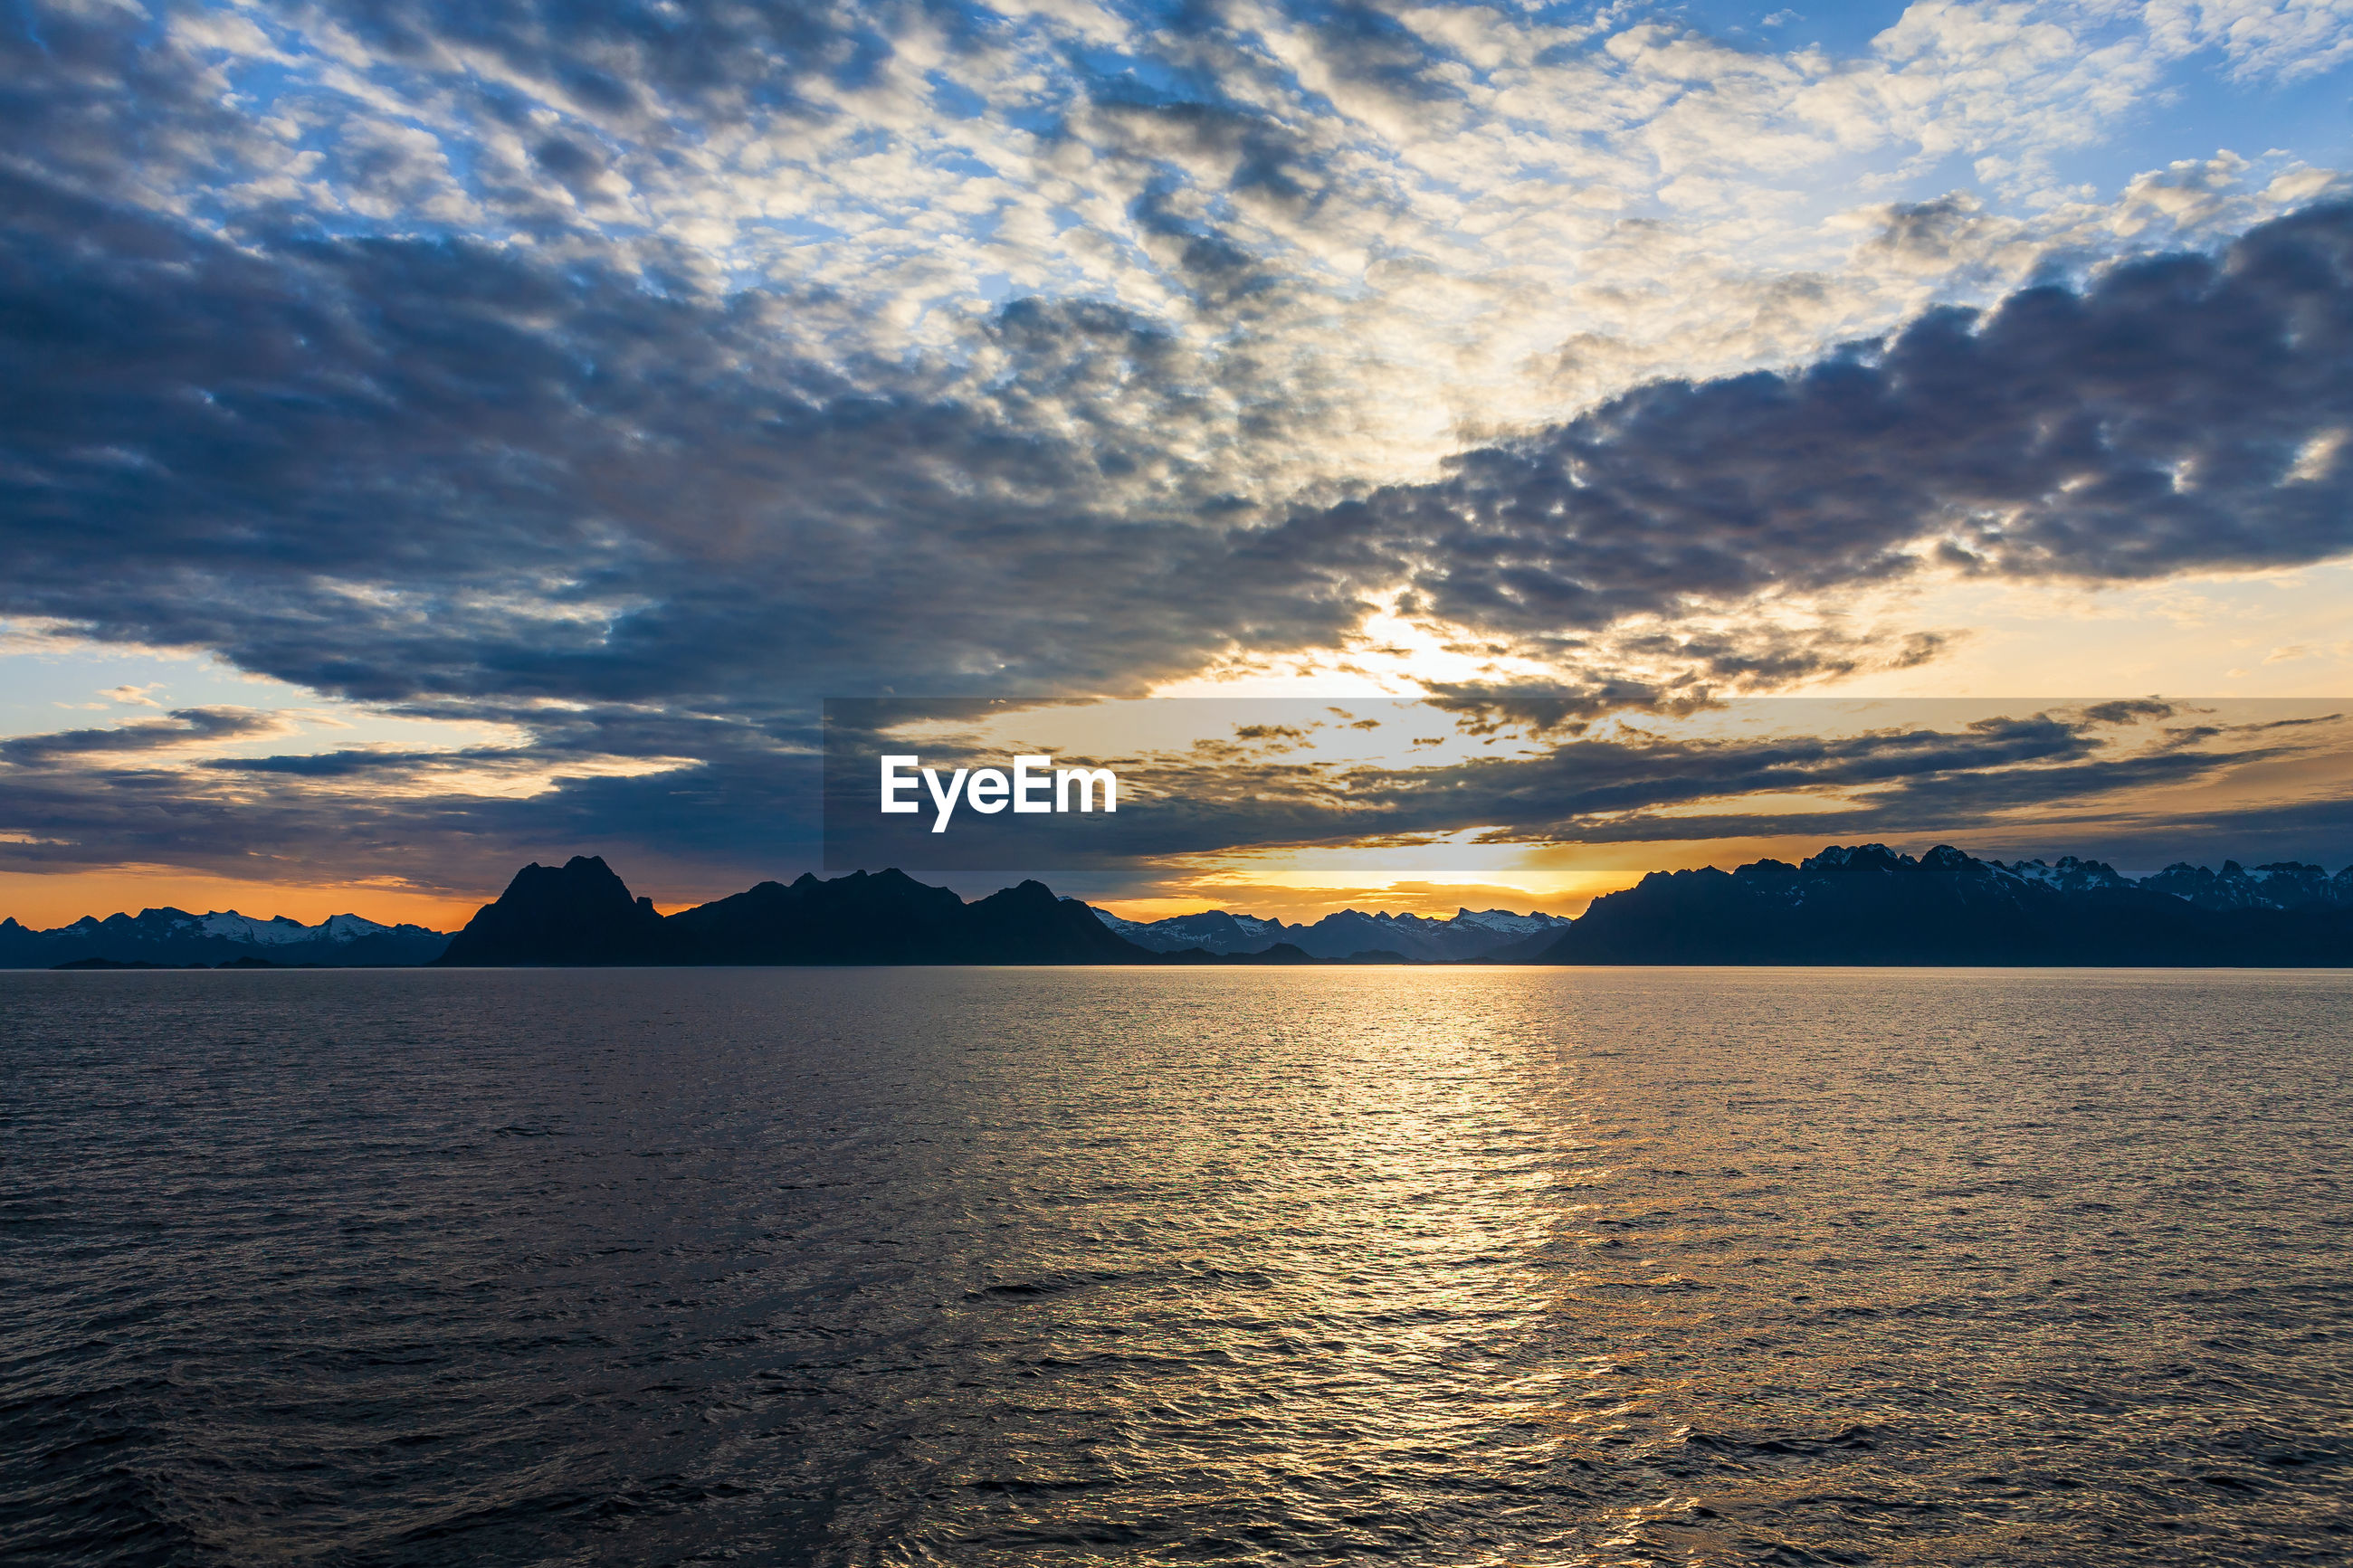 SCENIC VIEW OF SEA BY SILHOUETTE MOUNTAINS AGAINST SKY